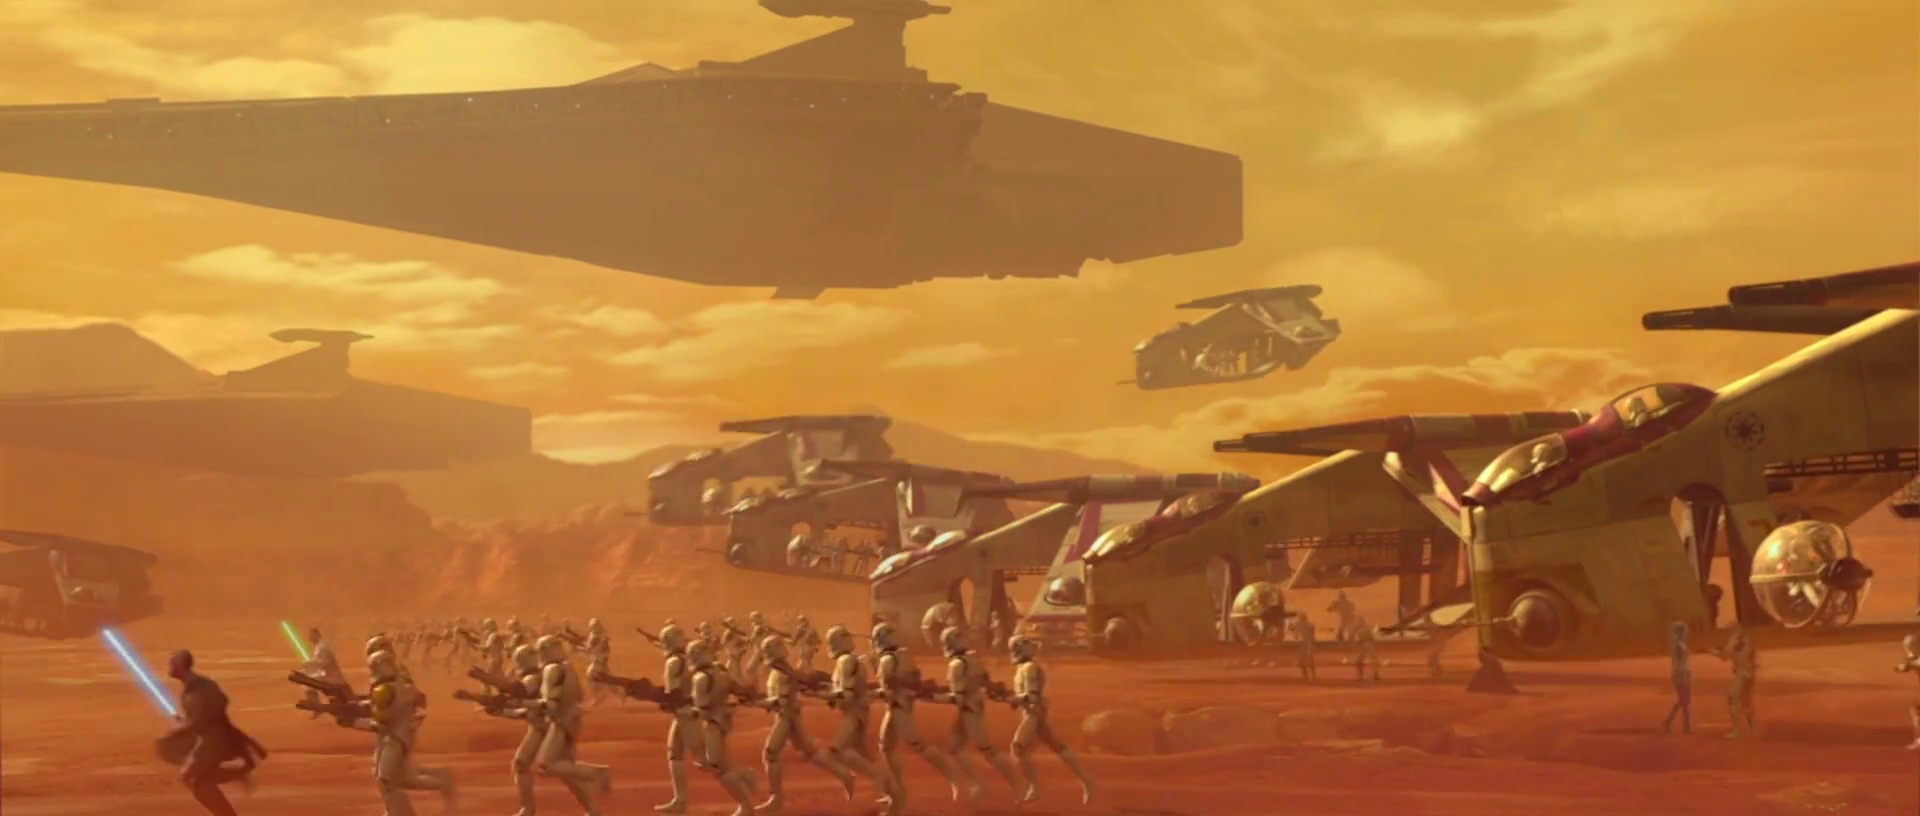 Category Images From Star Wars Episode Ii Attack Of The Clones Wookieepedia Fandom